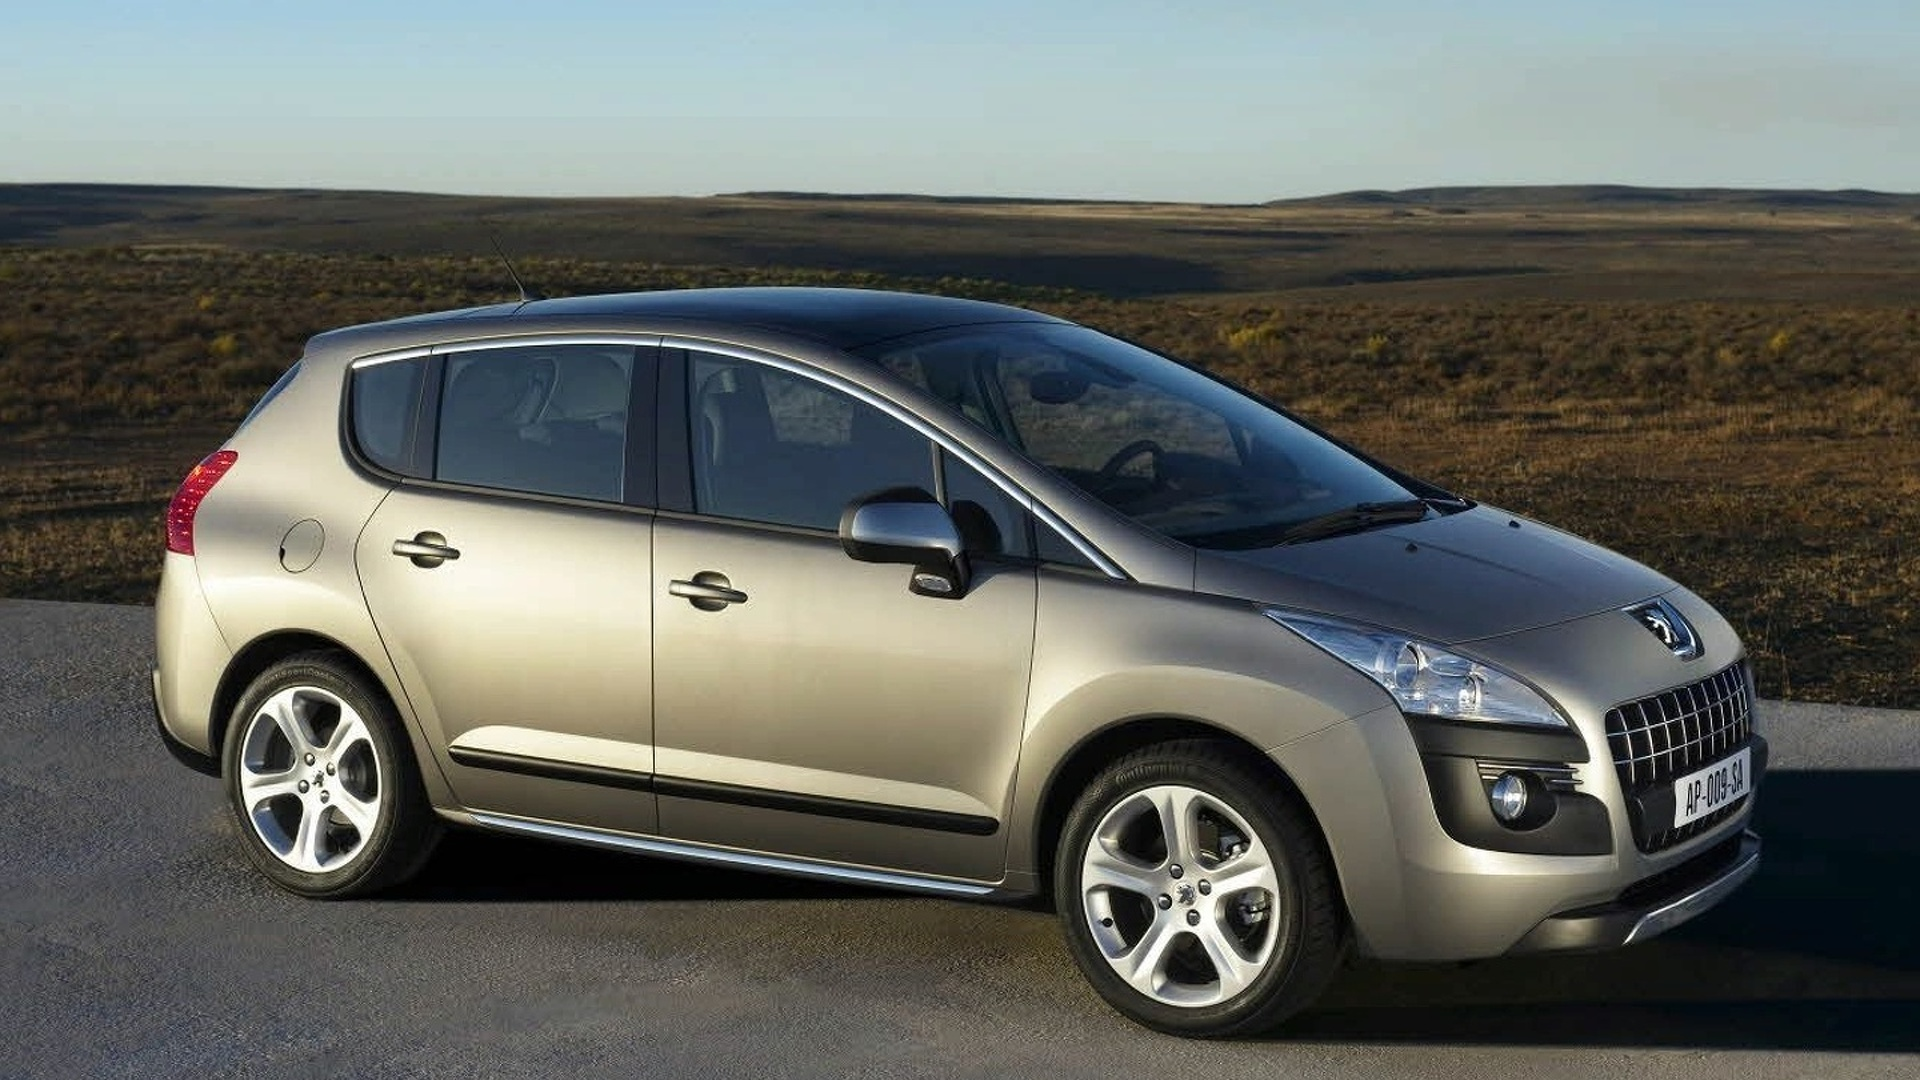 Peugeot 3008 Unveiled - 70 photos plus video